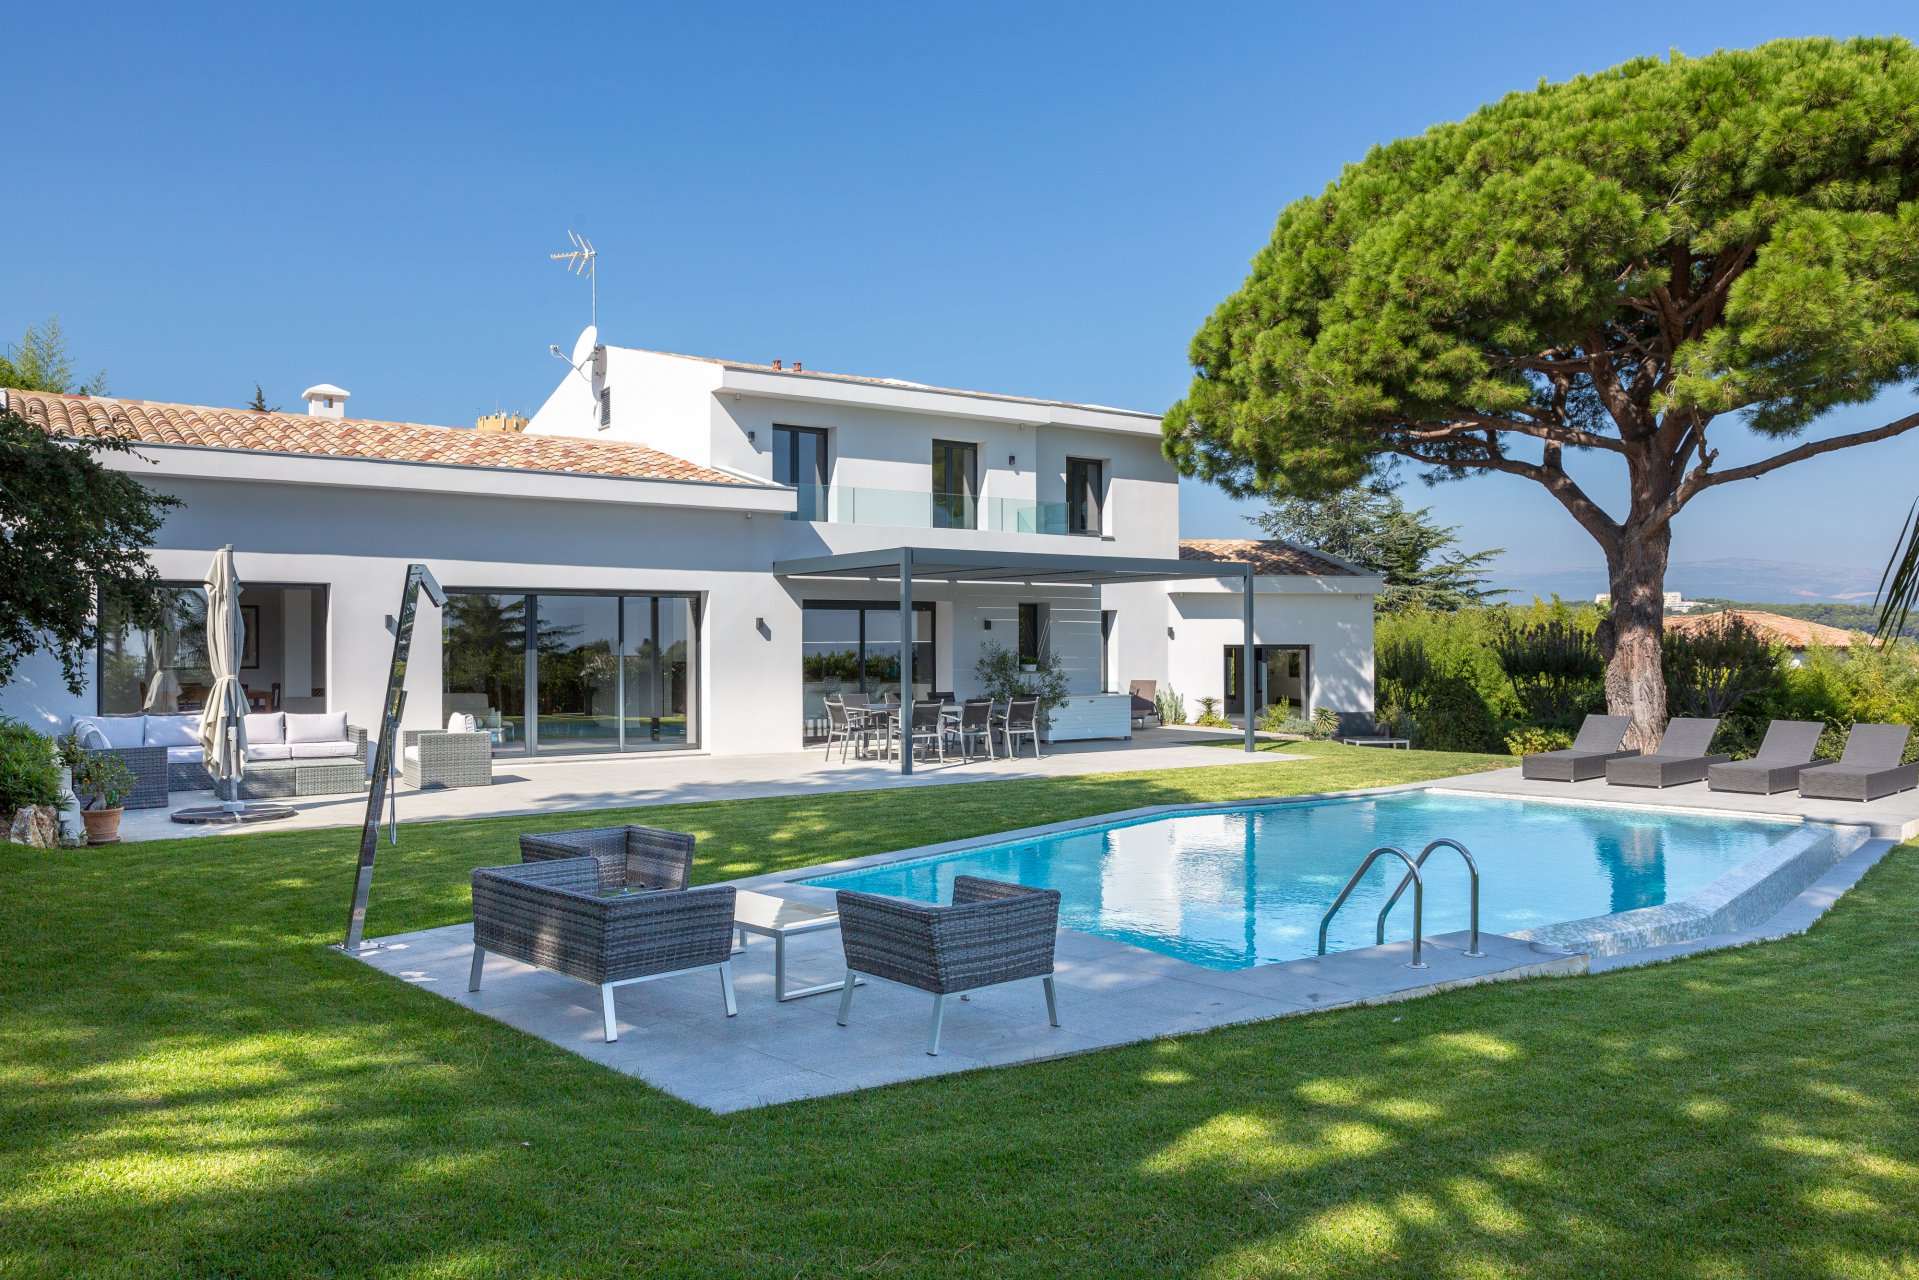 Ad Sale House Cannes Super Cannes (06400), 7 Rooms ref:V4788CA